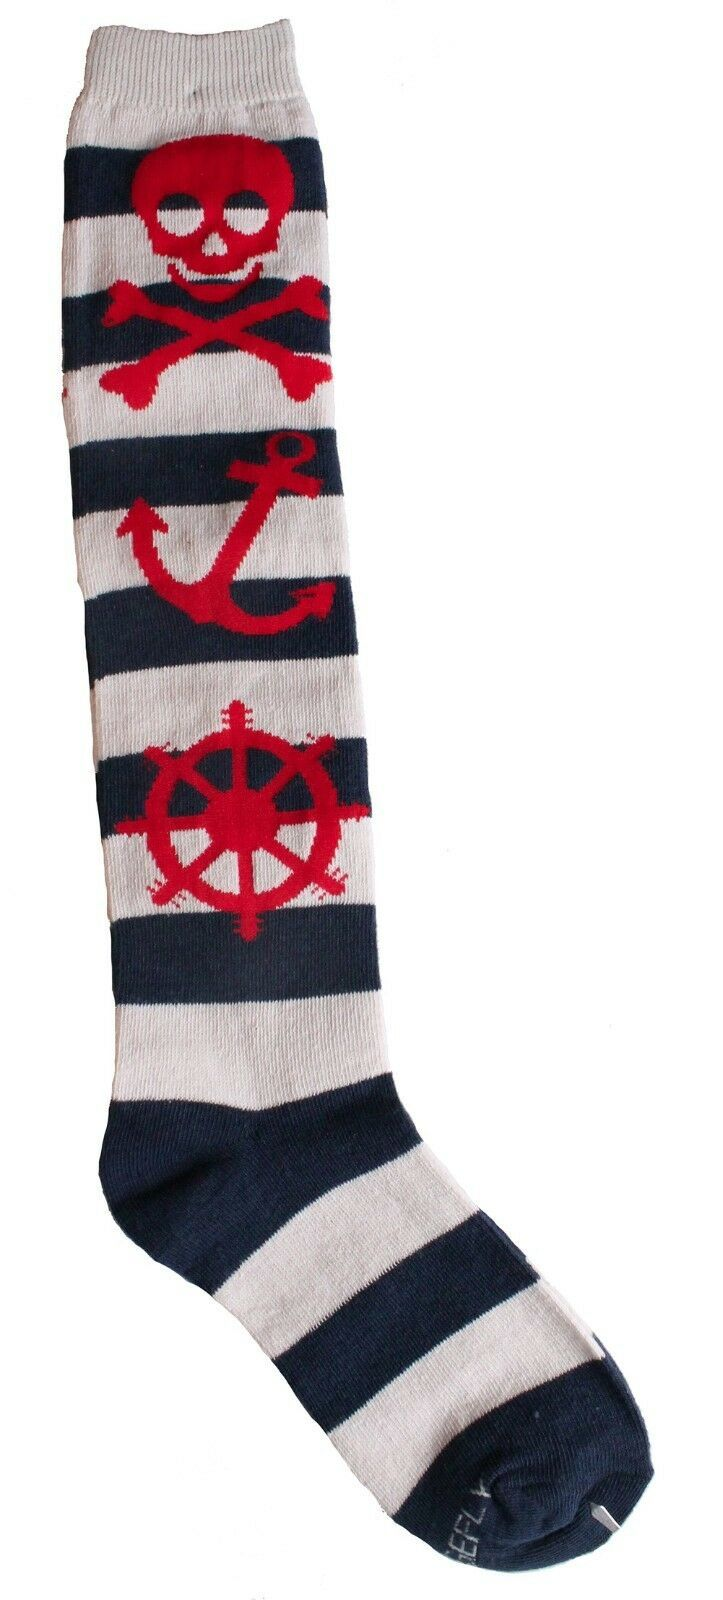 Loungefly Nautical Skull Navy Grey Red Striped Knee High Socks LFSK557 NWT